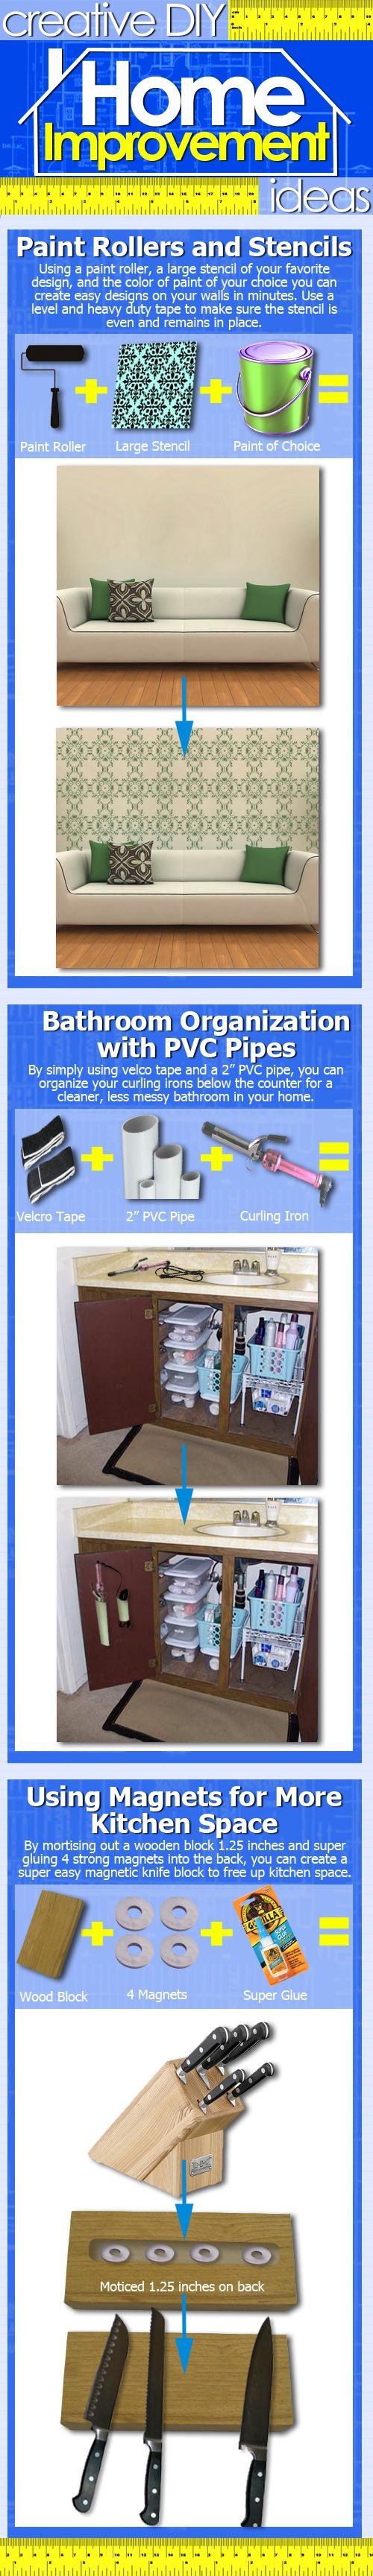 Creative home improvement projects